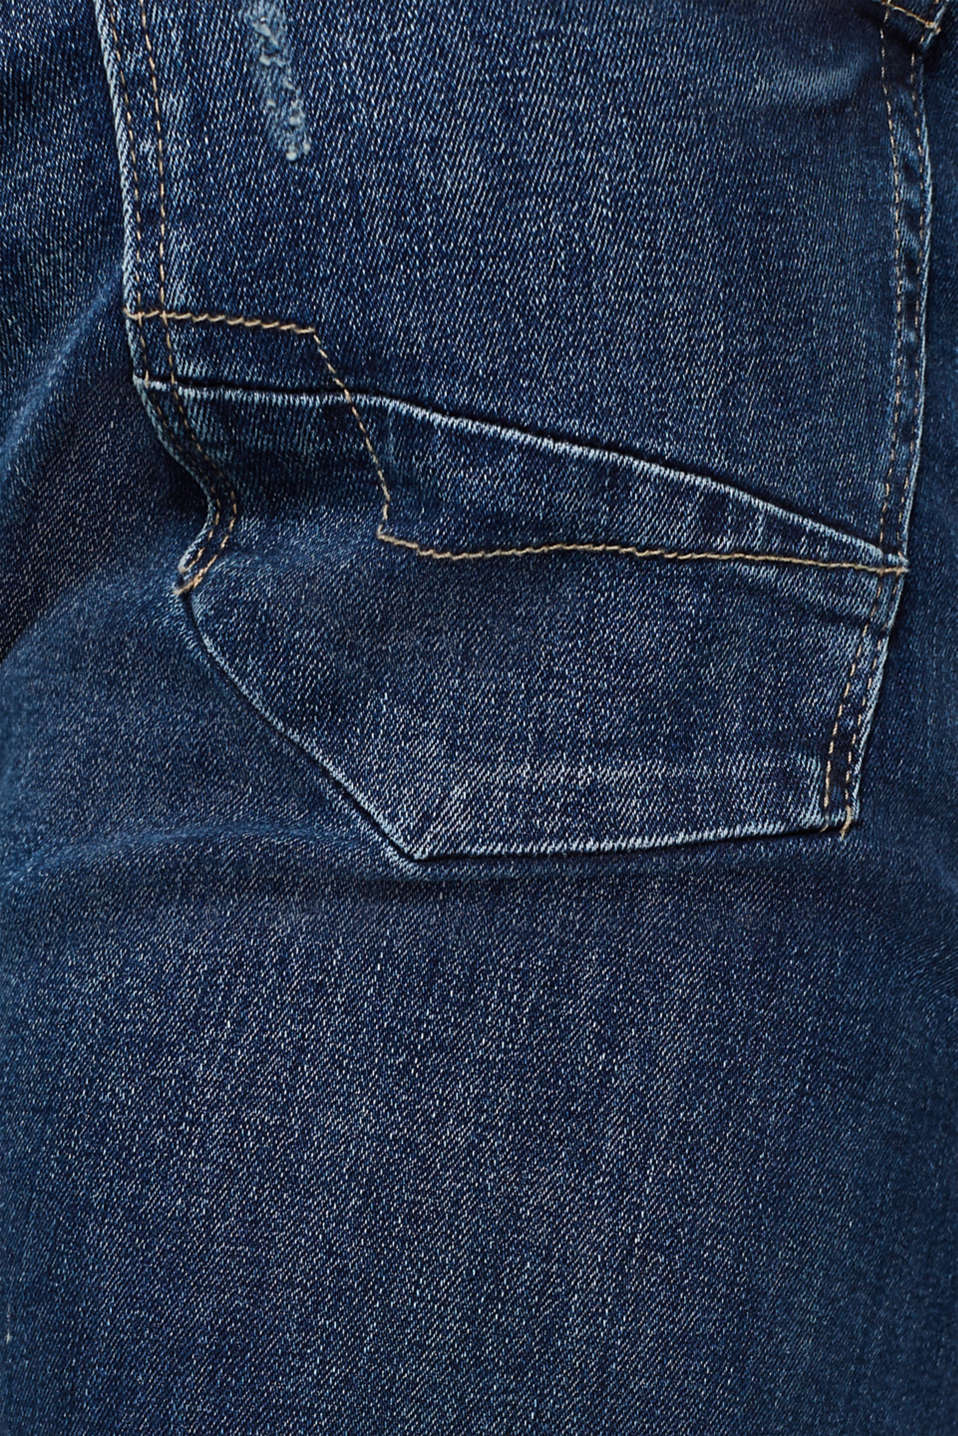 Stretch jeans containing organic cotton, BLUE MEDIUM WASH, detail image number 4